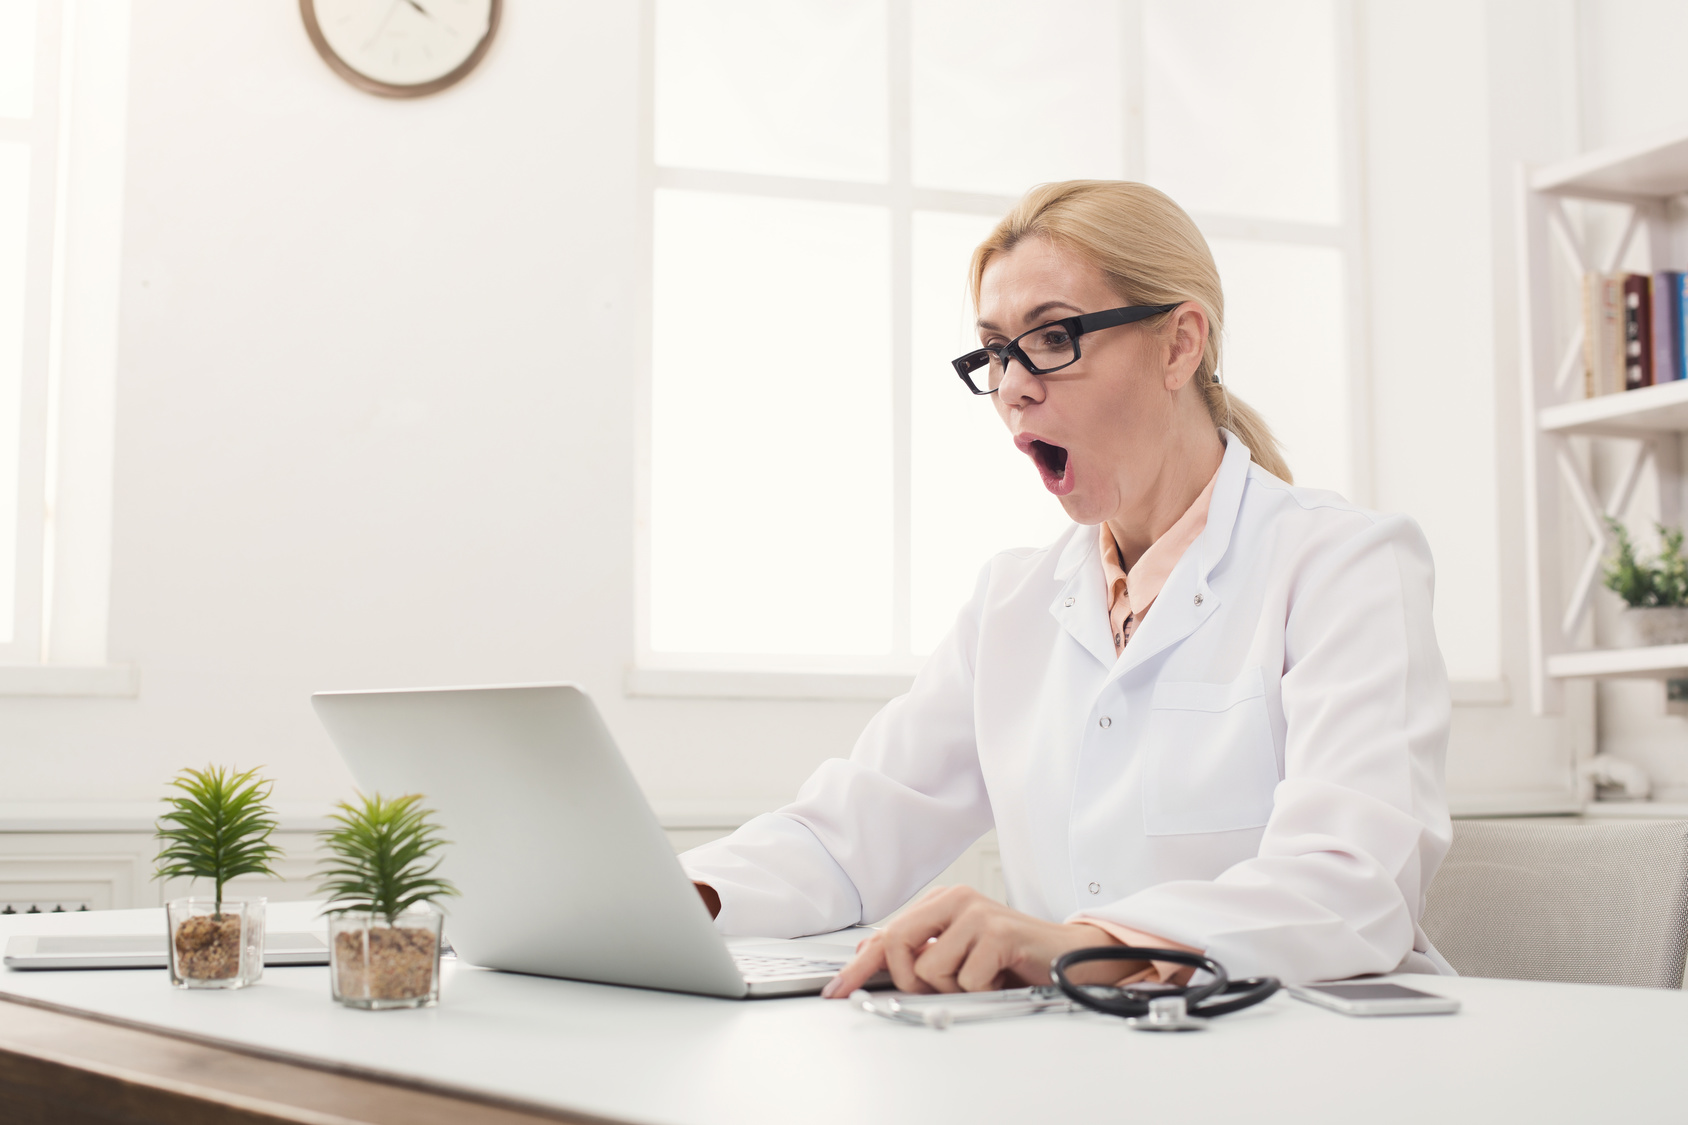 Shocked doctor looking at laptop